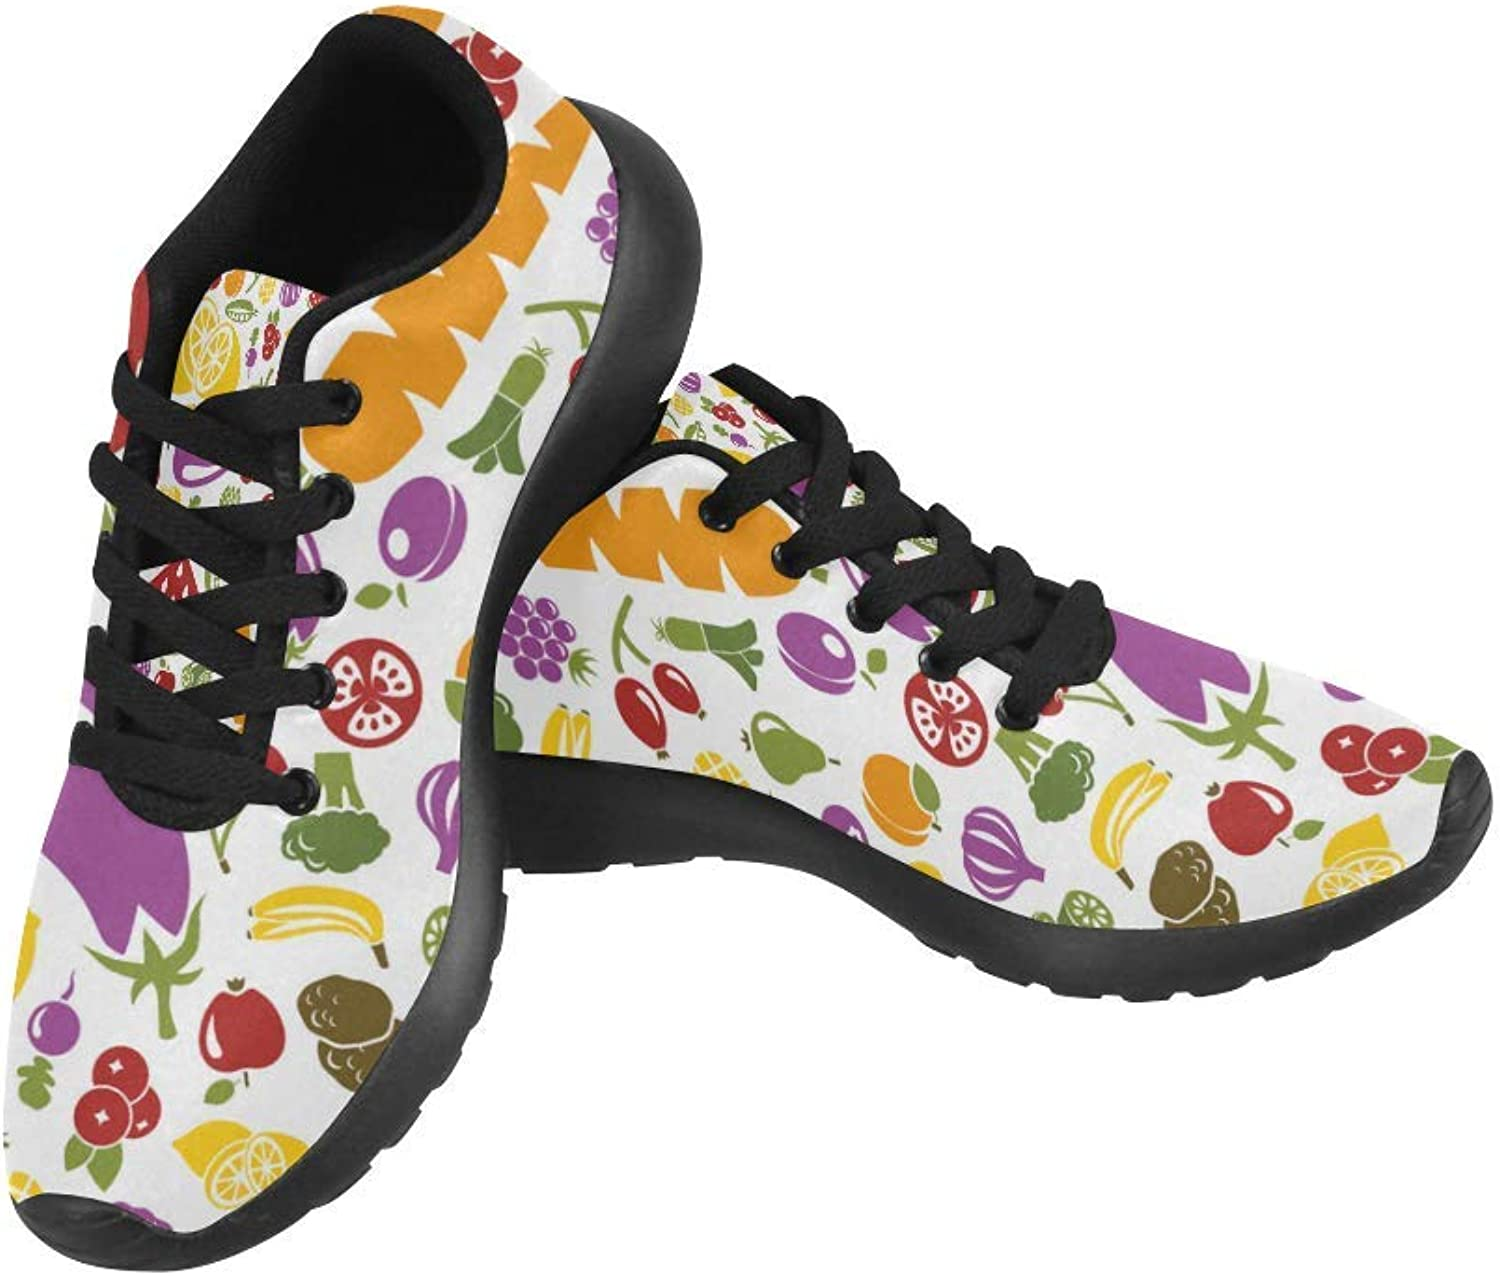 InterestPrint colorful Fruits and Vegetable Print on Women's Running shoes Casual Lightweight Athletic Sneakers US Size 6-15